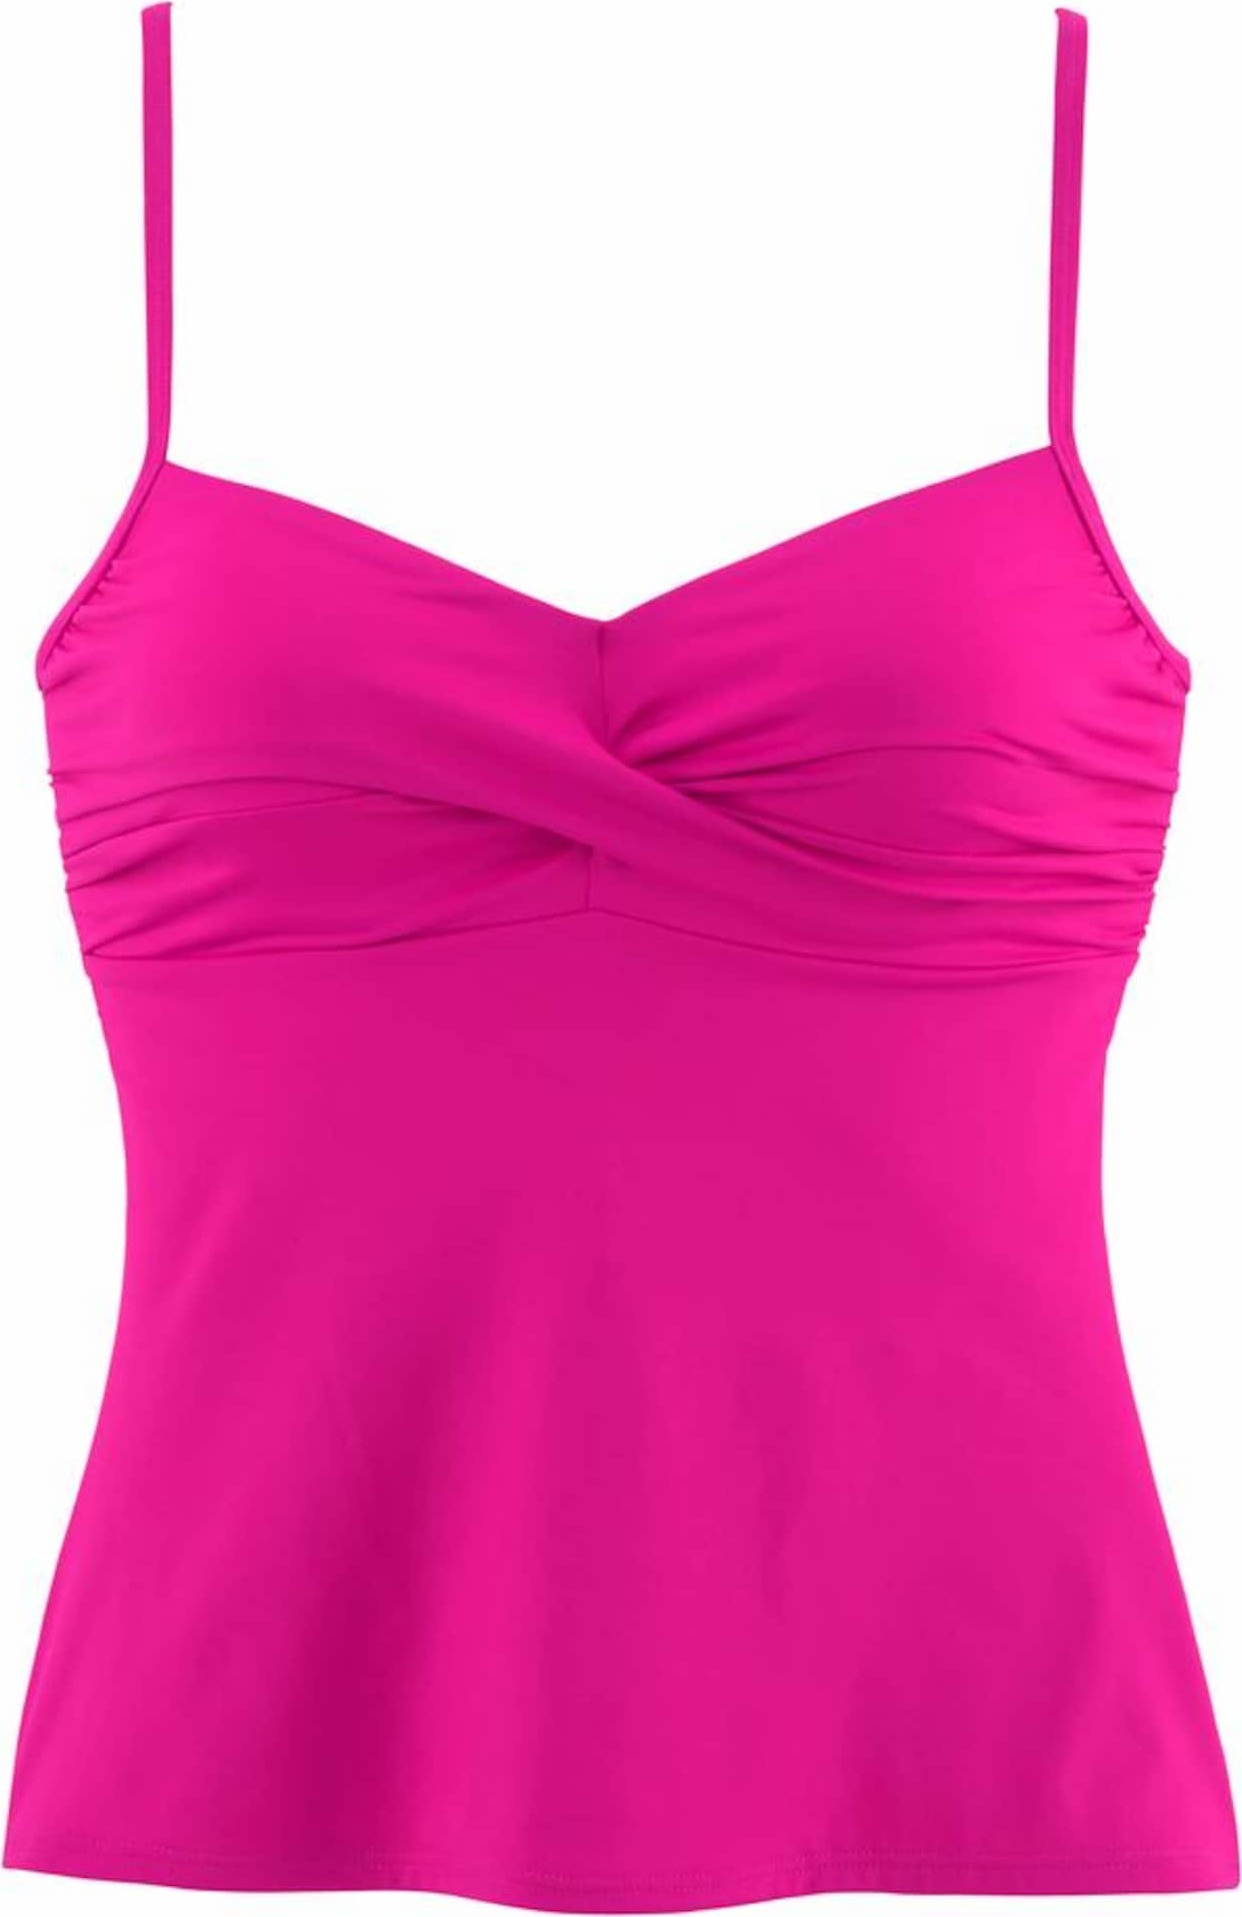 s.Oliver Tankiny top Spain pink S.Oliver